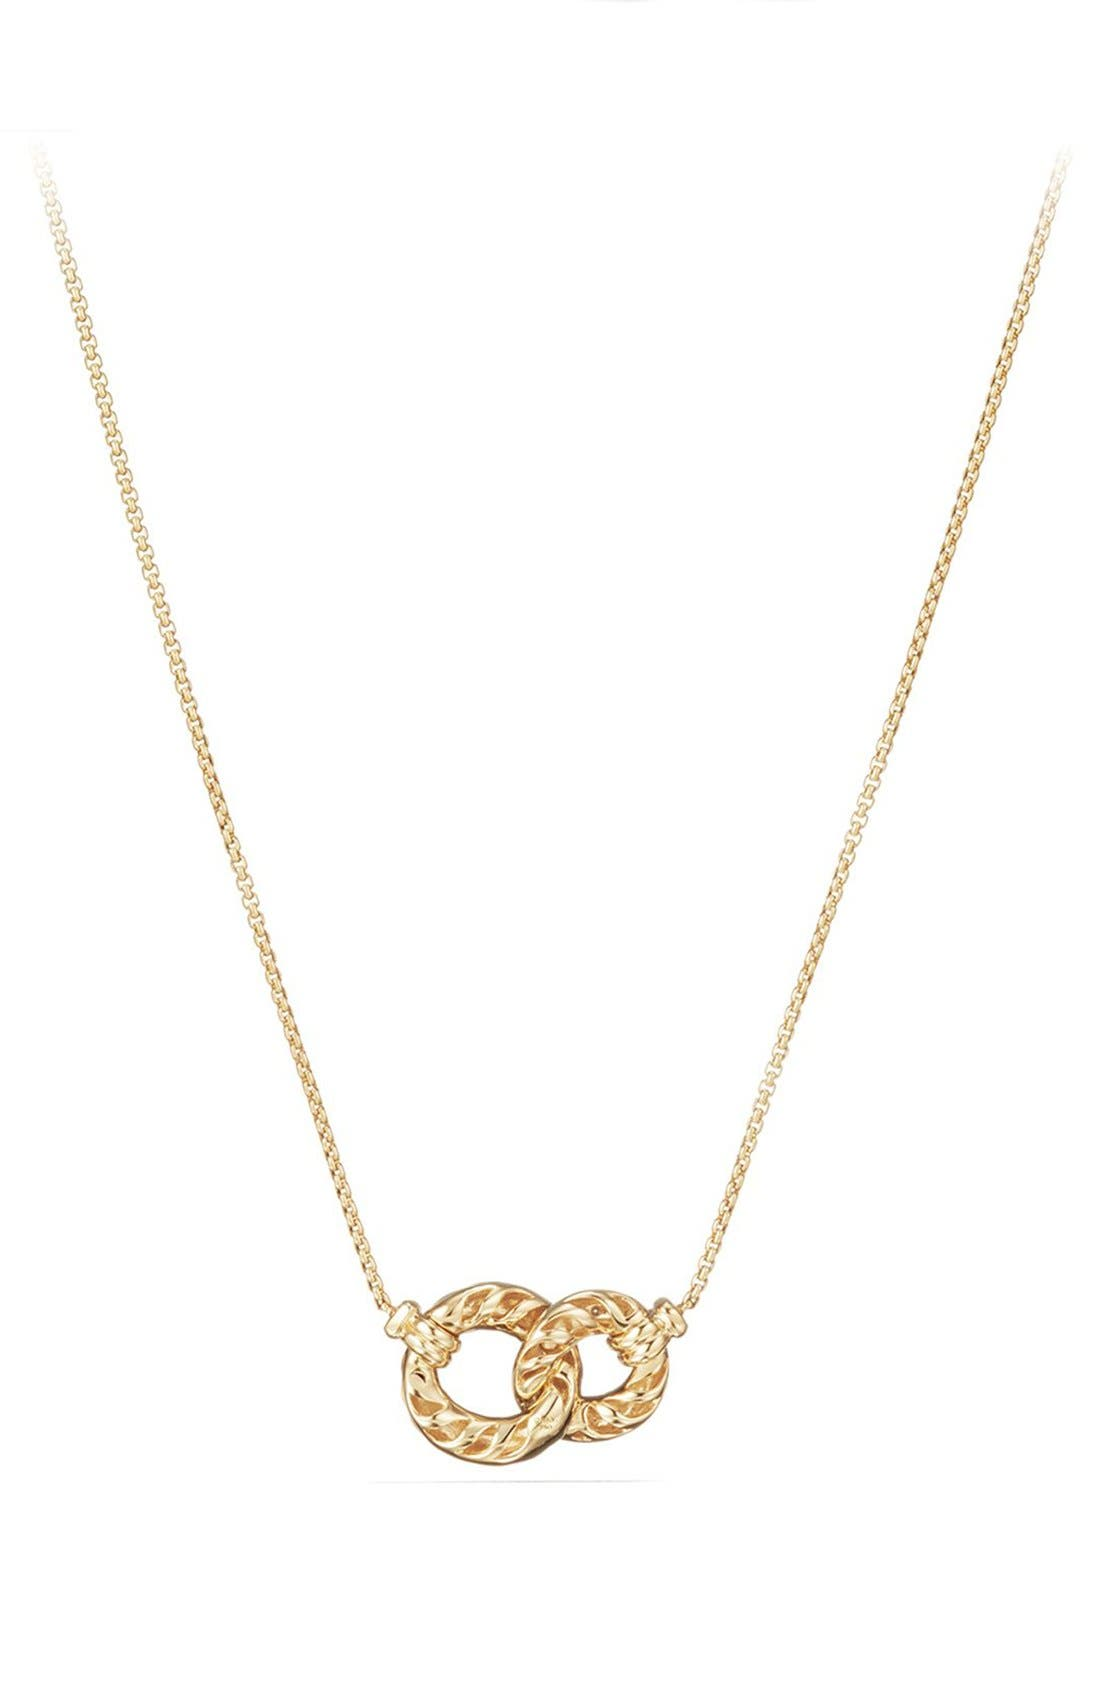 DAVID YURMAN Belmont Extra-Small Double Curb Link Necklace with Diamonds in 18K Gold